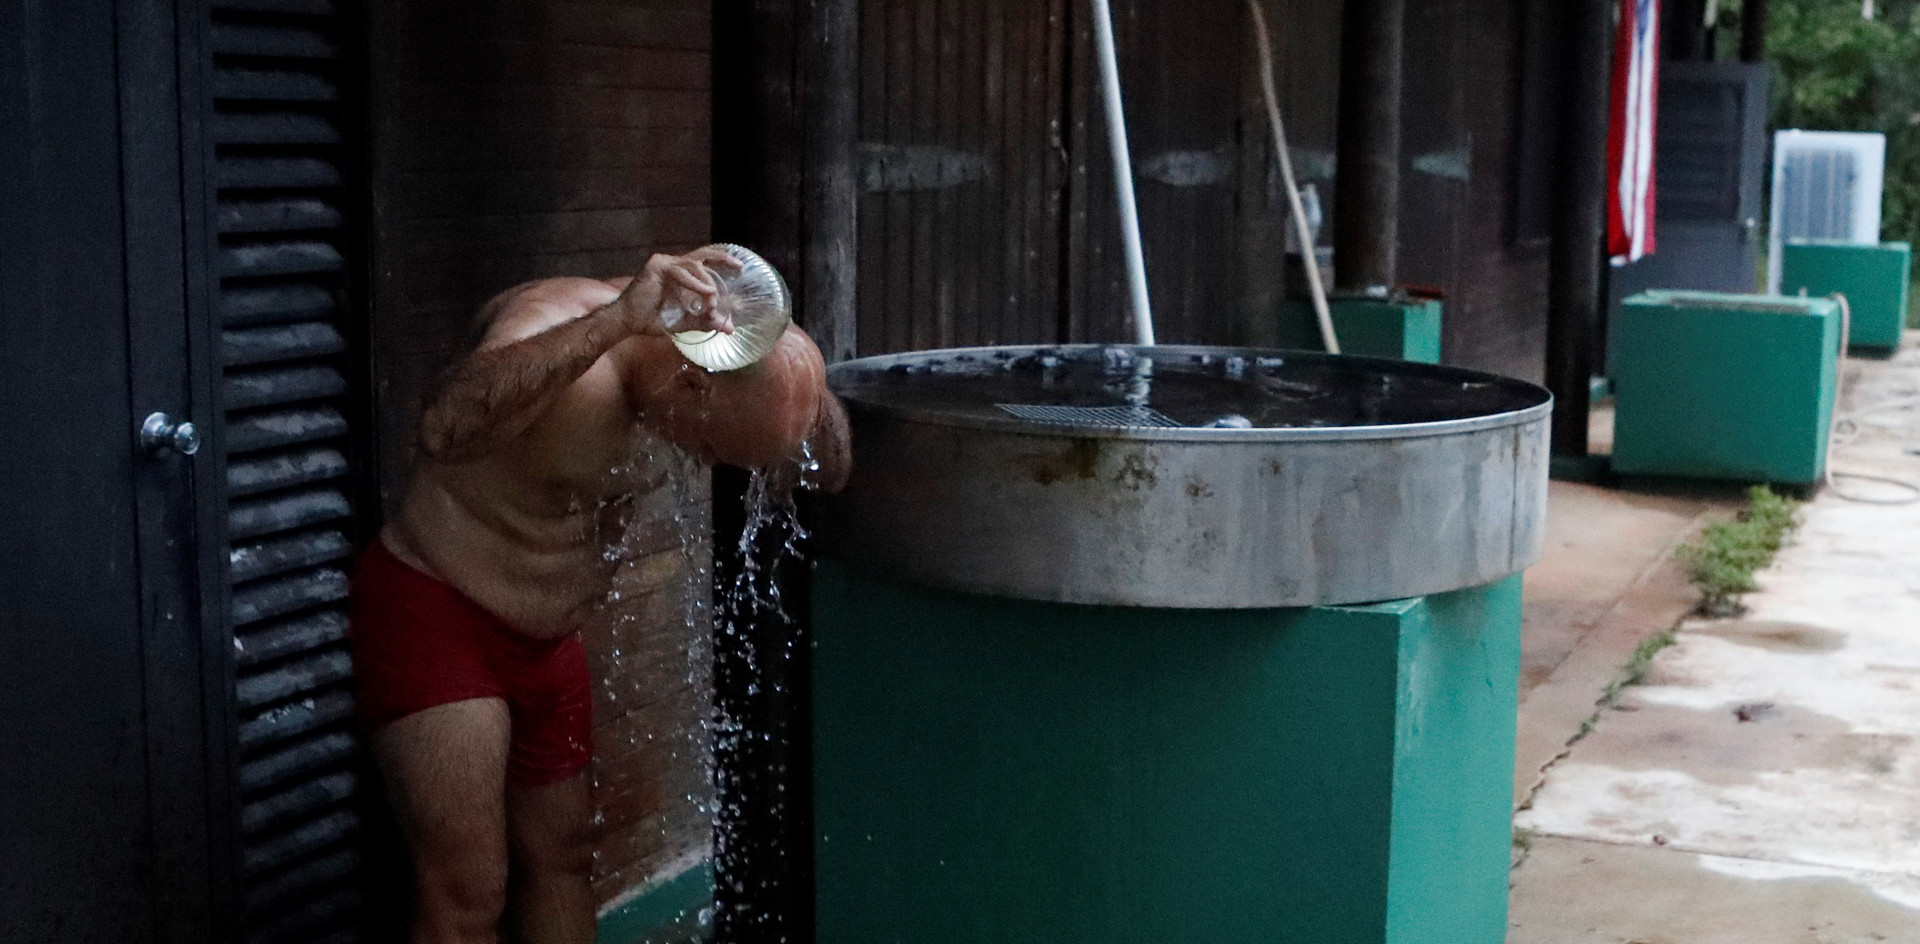 Ricardo Valentin, 62, bathes outside using collected rainwater at the Rio Abajo Aviary in Aricebo, Puerto Rico.